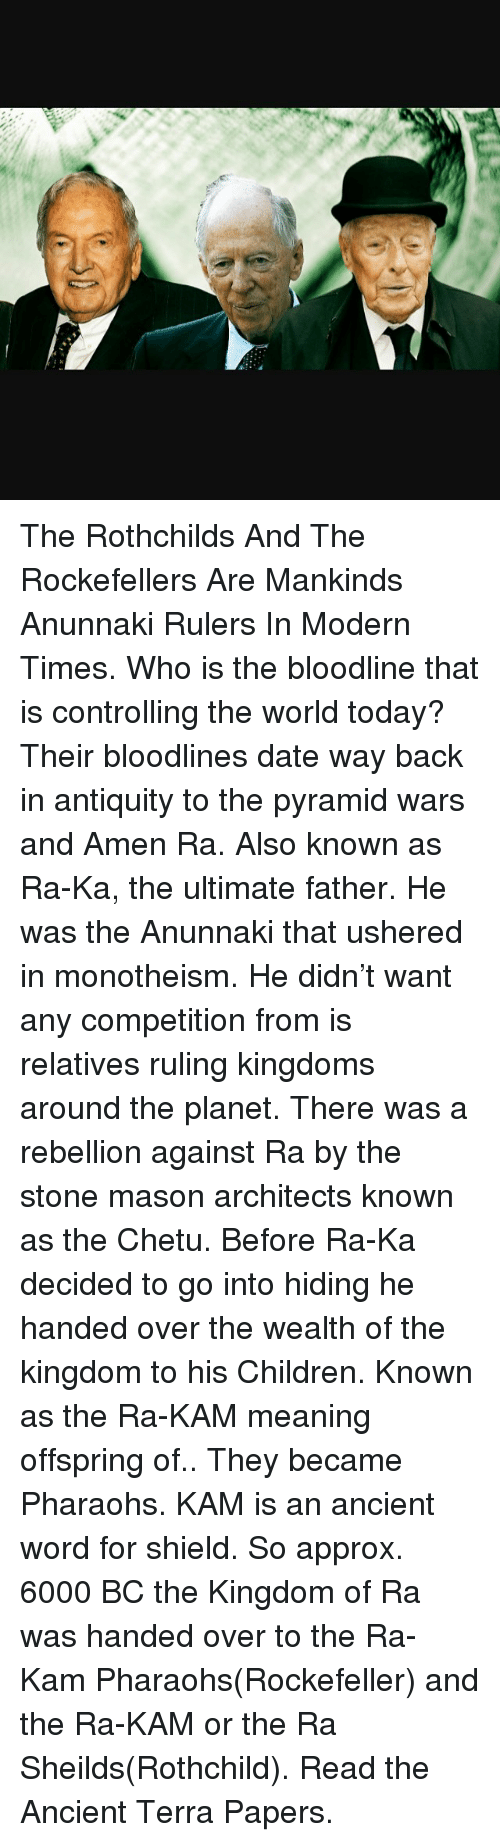 The Rothchilds and the Rockefellers Are Mankinds Anunnaki Rulers in